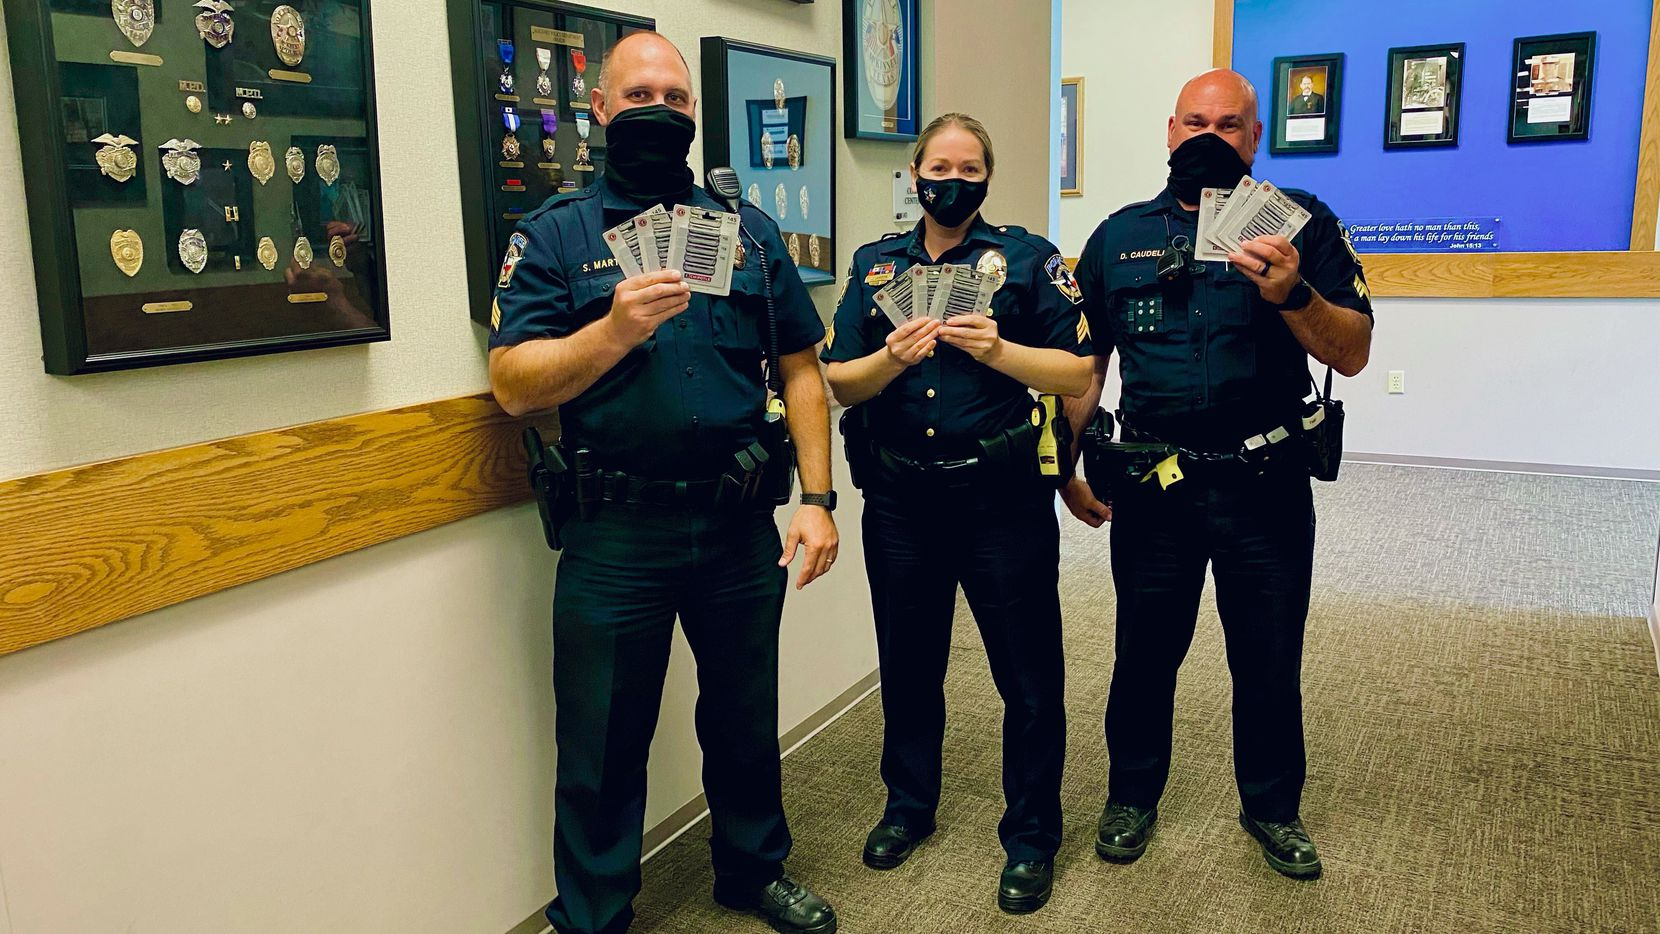 An anonymous benefactor donated more than $400 worth of Chipotle gift cards to the McKinney Police Department.